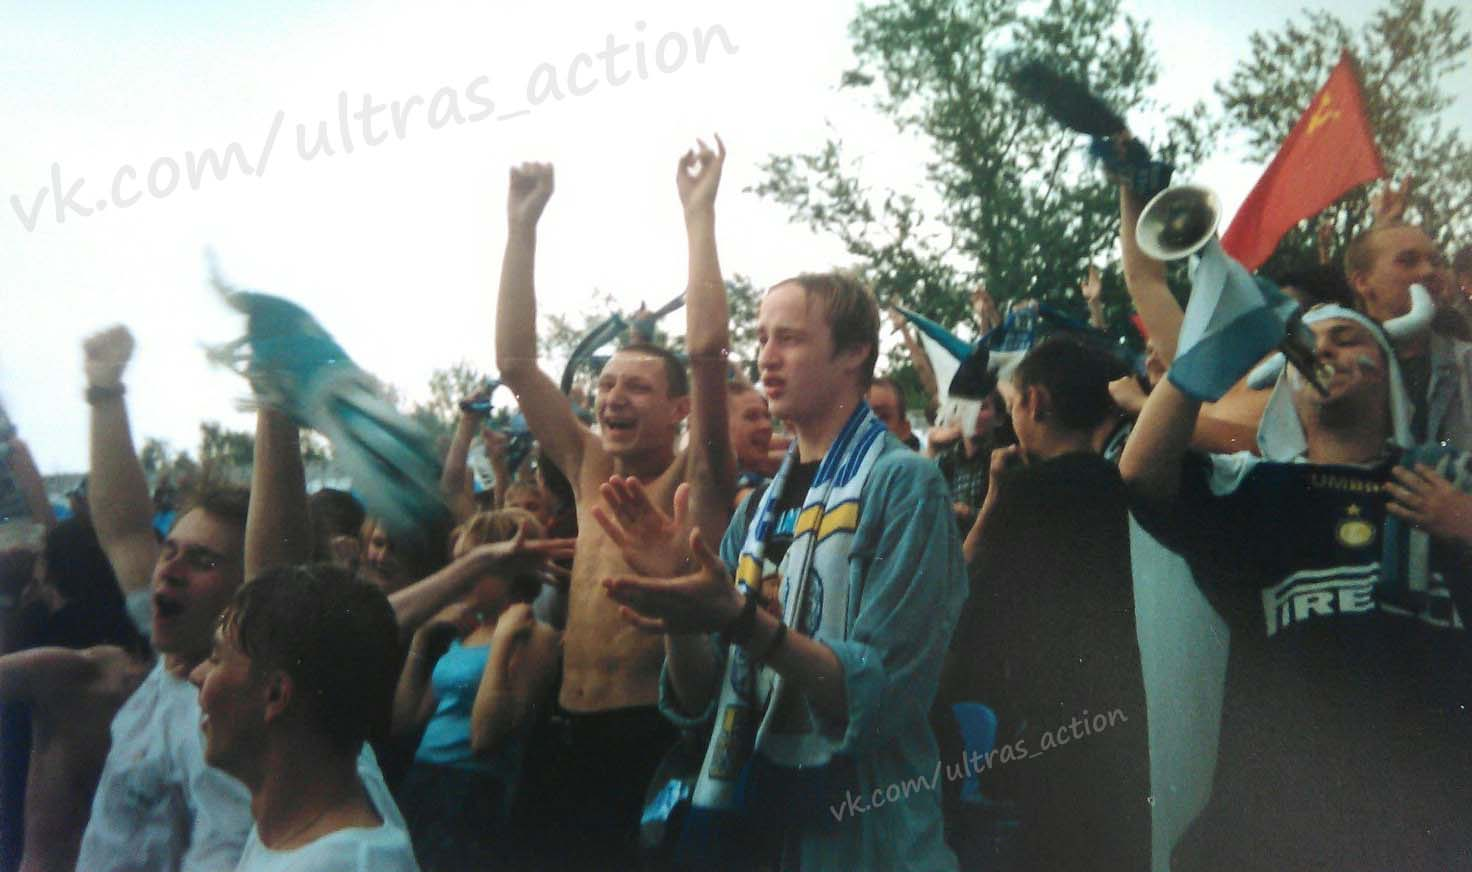 vk.com ultras action